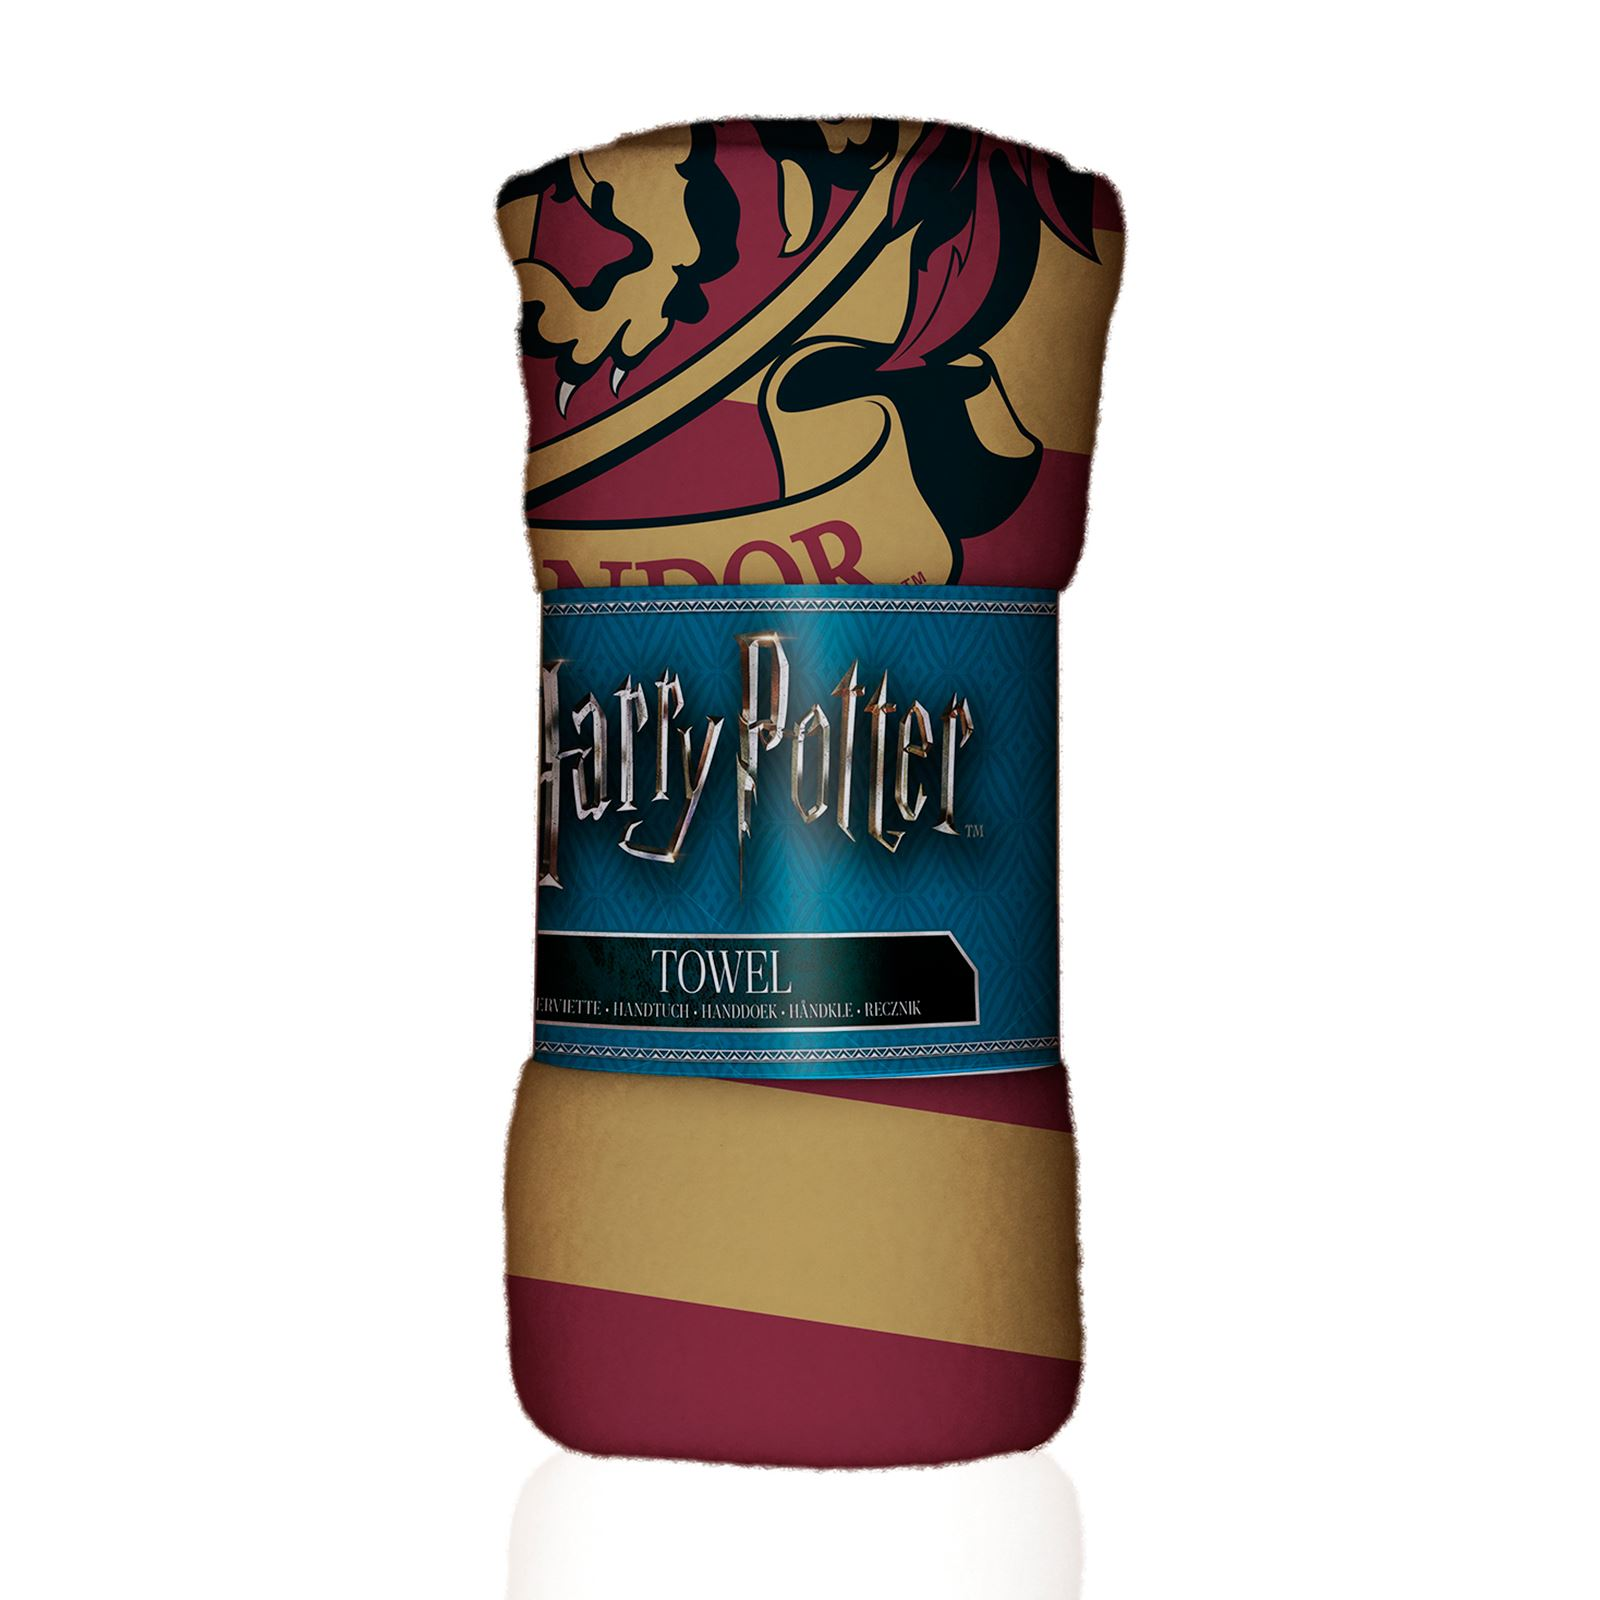 Harry Potter Bettwäsche Primark Harry Potter Muggles - Bettbezug Sets Vorhänge Decke